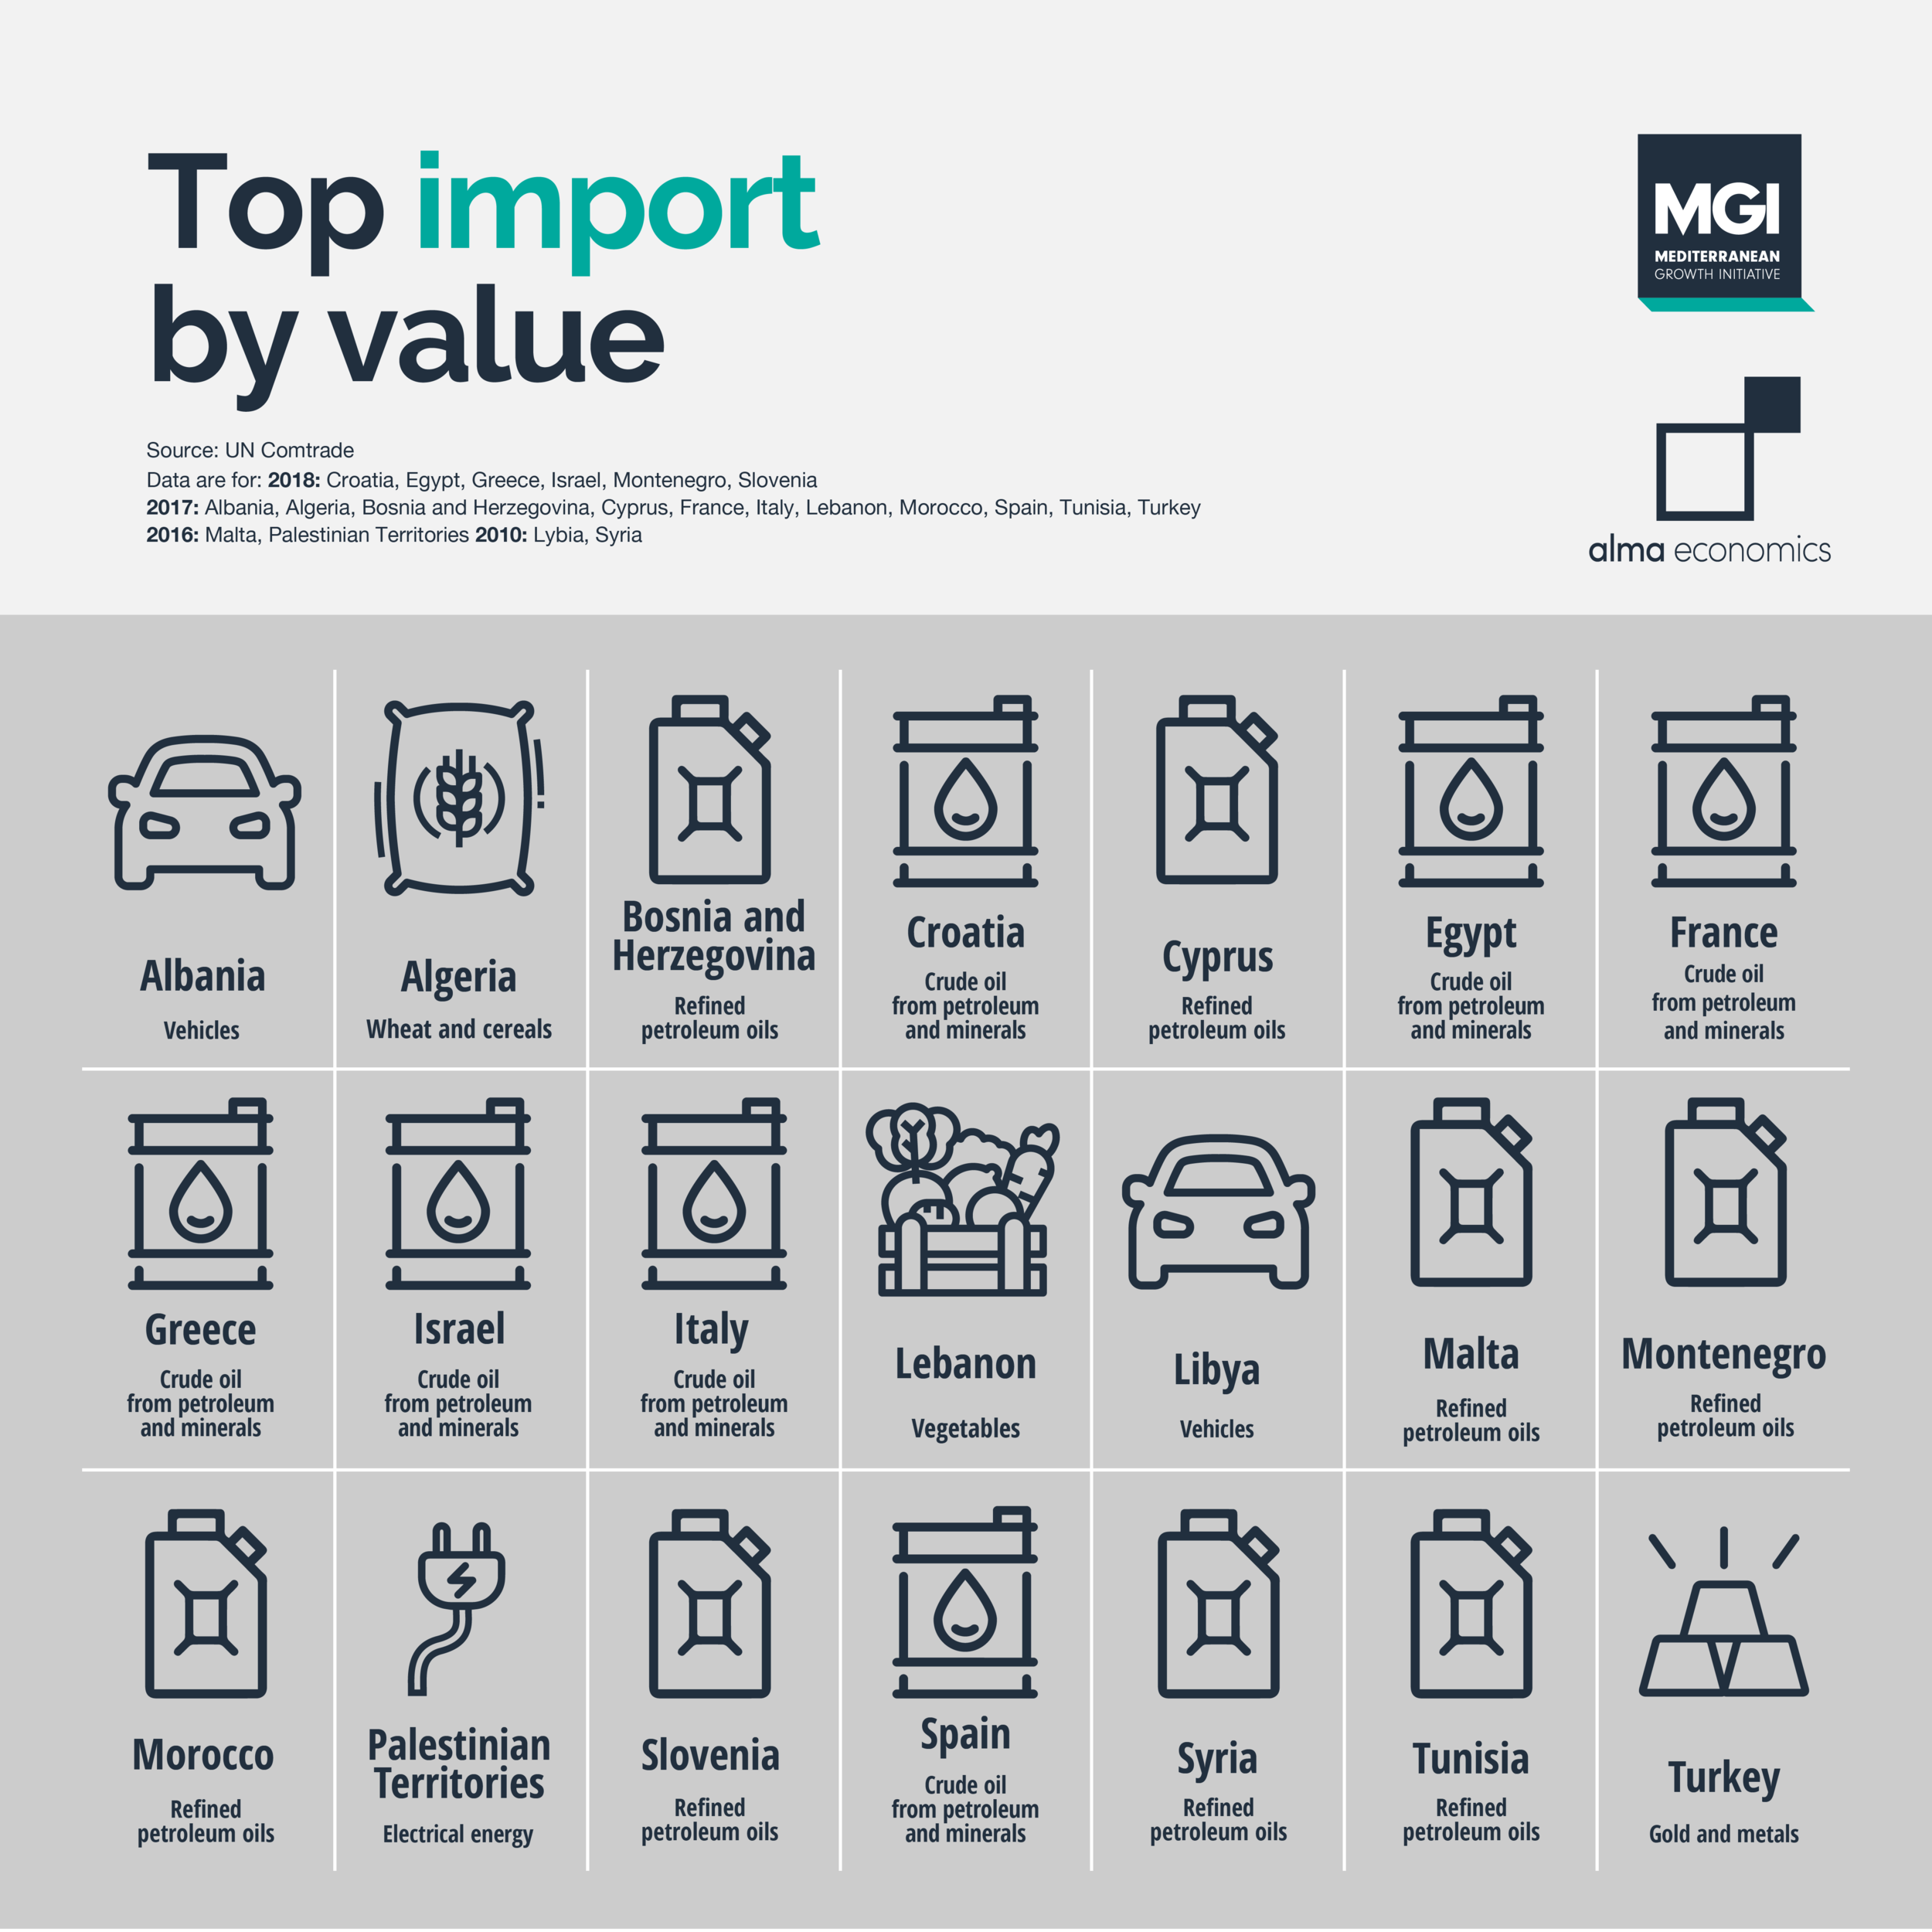 Top import by value - Oil products are in the top of the import list for nearly 3 out of 4 Mediterranean countries